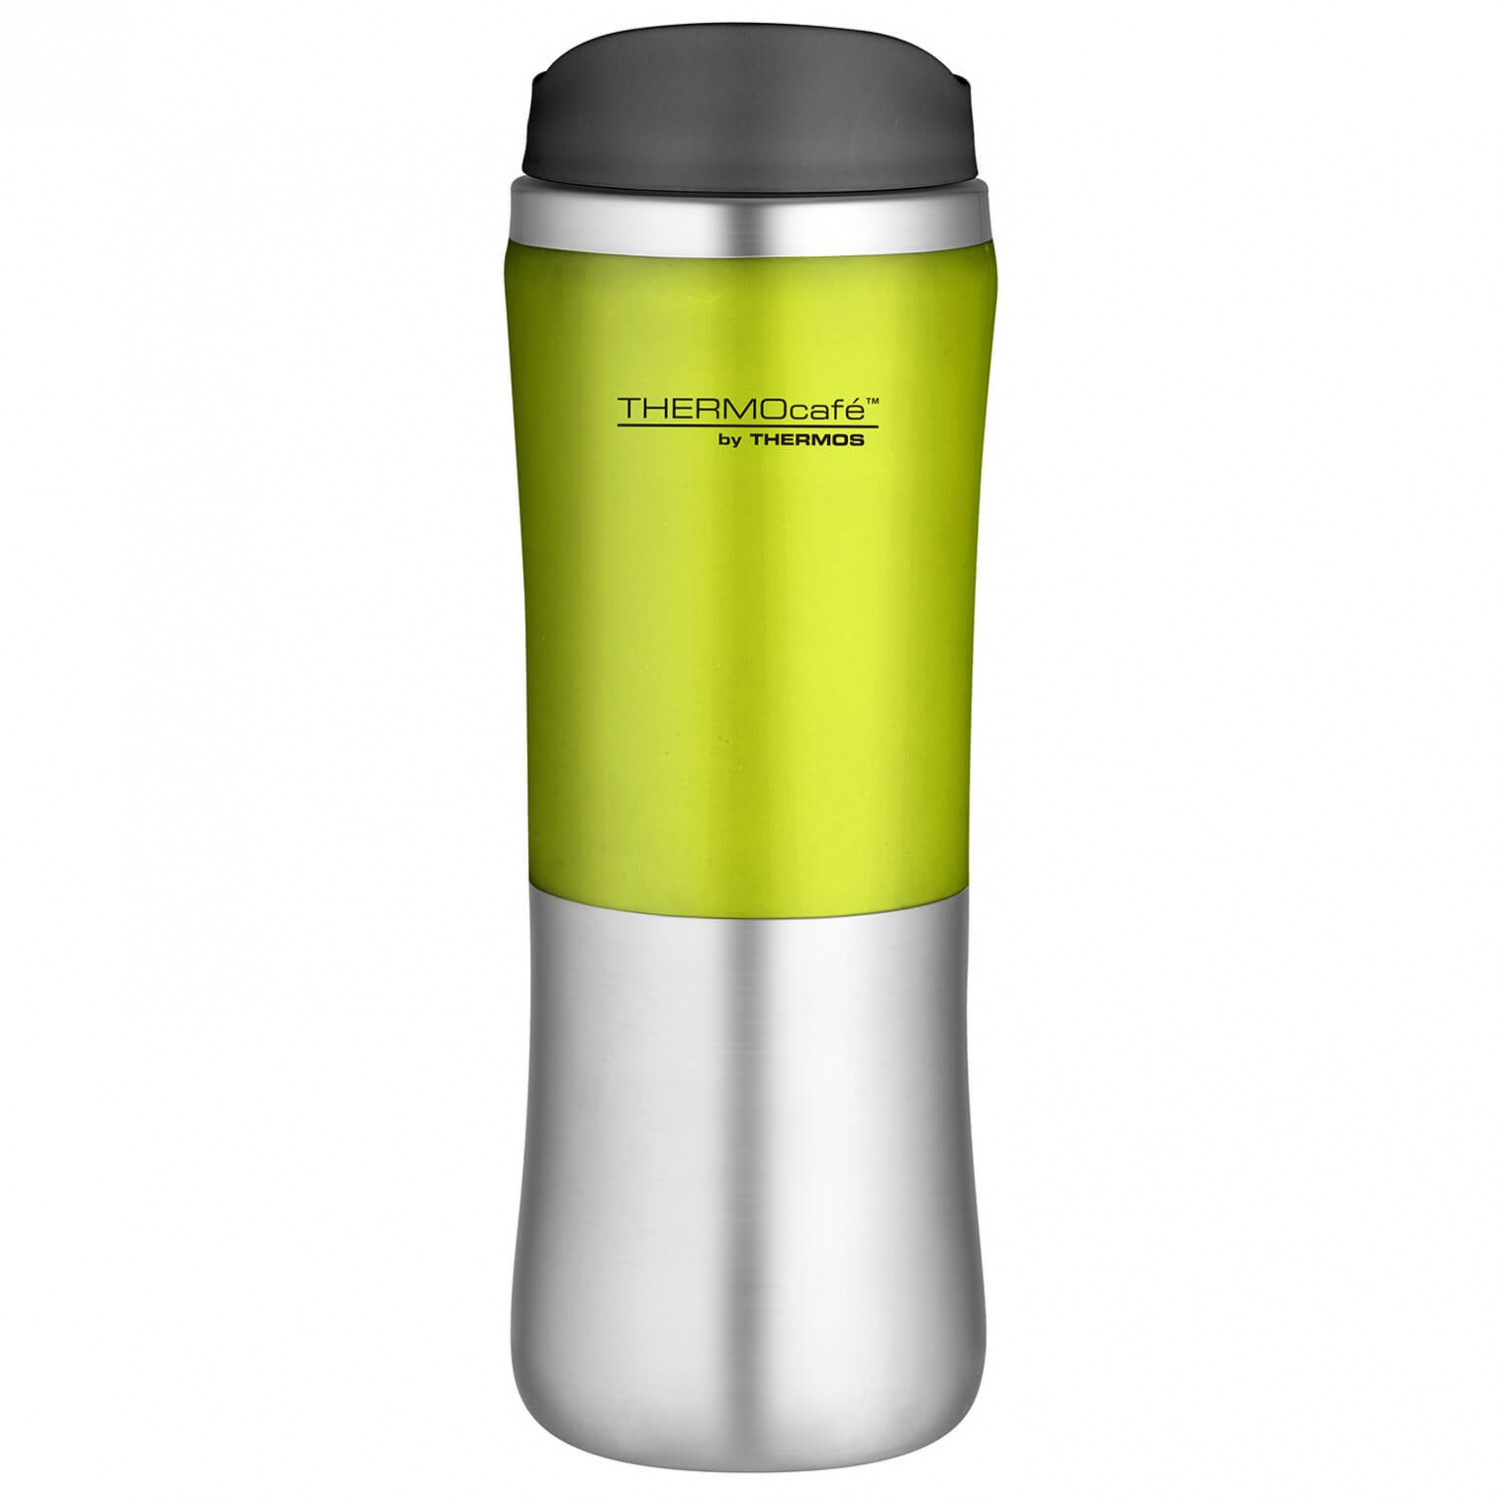 thermos thermocafe brilliant mug isolierbecher online kaufen. Black Bedroom Furniture Sets. Home Design Ideas